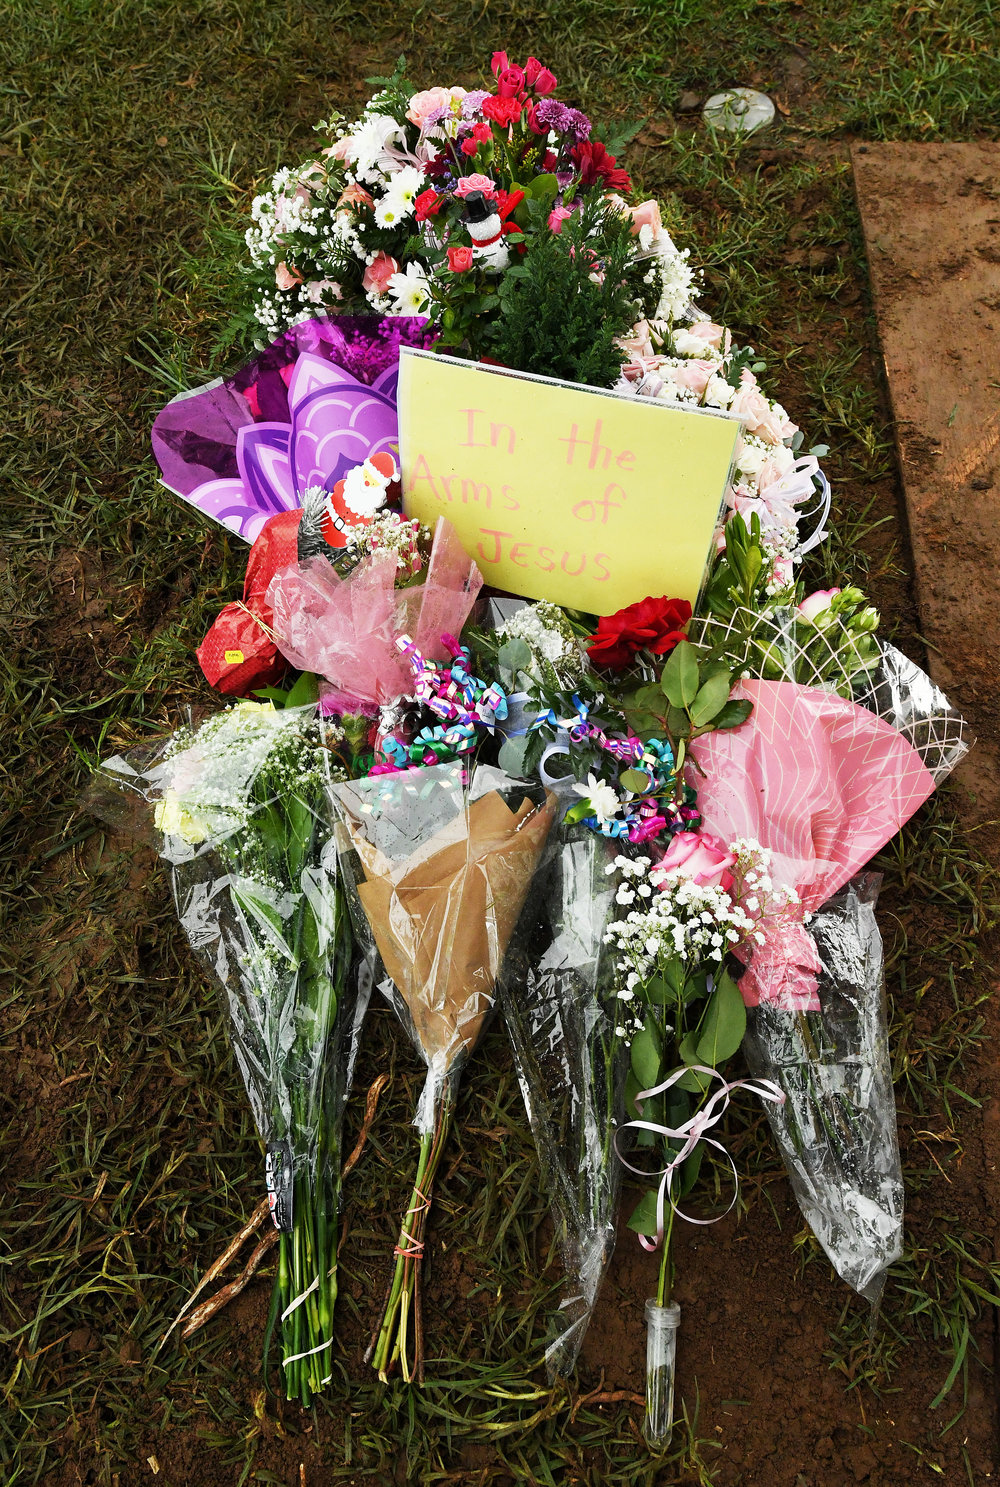 Flowers sit atop the grave of Baby Jane Doe at Sunnyslope Cemetery in Corona, Thursday, December 6, 2018 following the infants burial. The newborn infant was found in a cardboard box near the 15 freeway in Corona in July. Corona police and fire departments along with others contributed to make the funeral possible for the child. Police are still searching for the person or persons responsible.